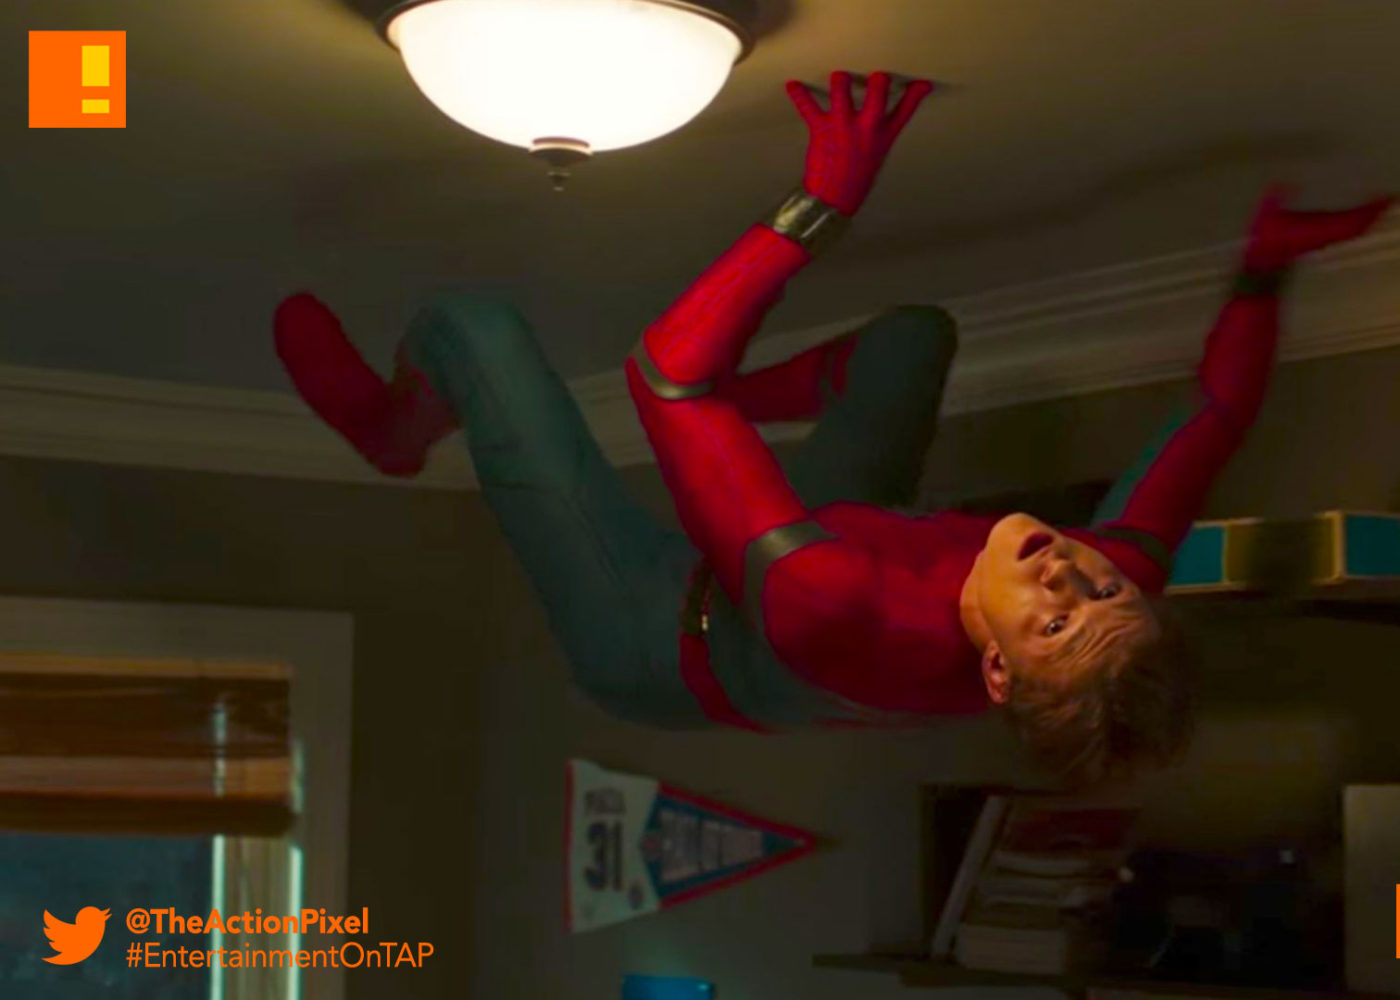 teaser, clip, mtv, spiderman, poster spider-man: homecoming, spider-man, spiderman, homecoming, marvel, marvel comics, disney, marvel studios, sony, the action pixel, entertainment on tap, tom holland, images